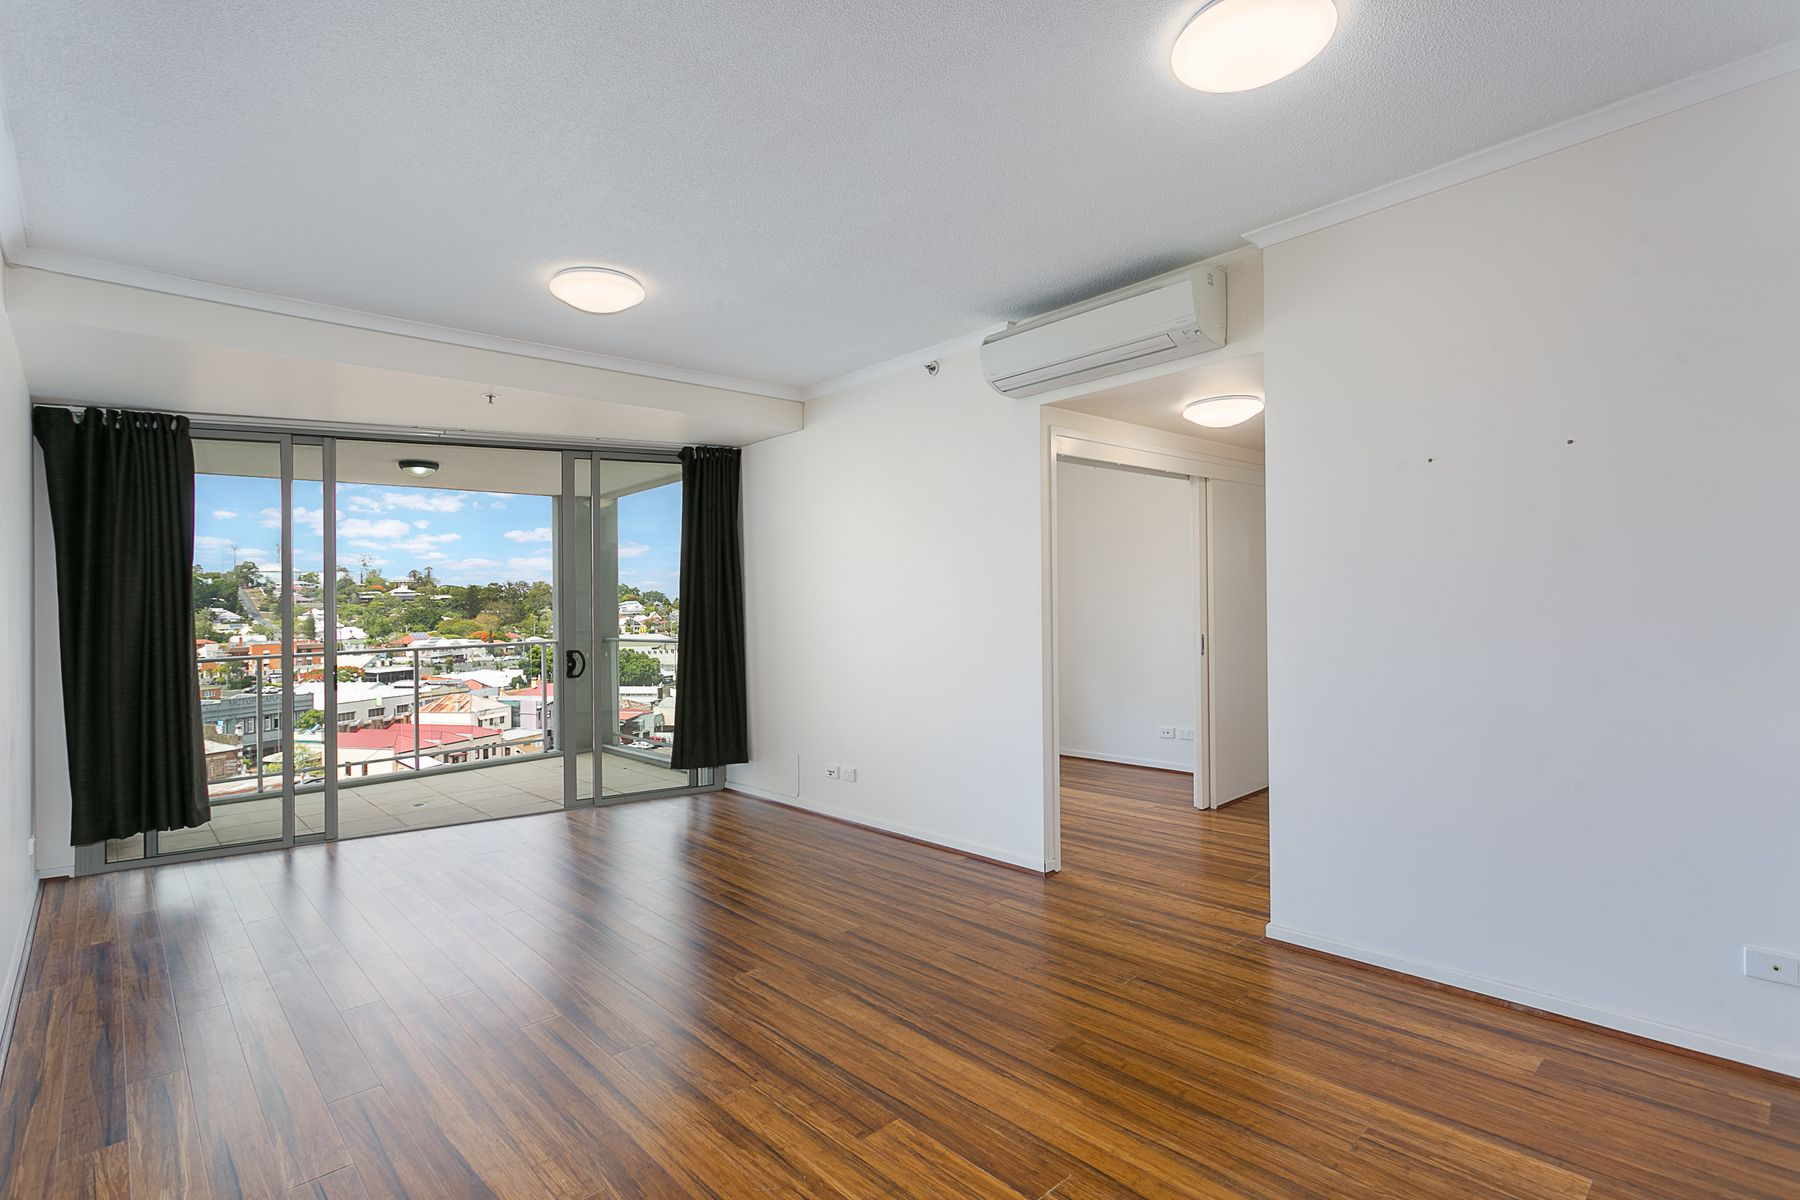 807/11 Ellenborough Street, Ipswich, QLD 4305